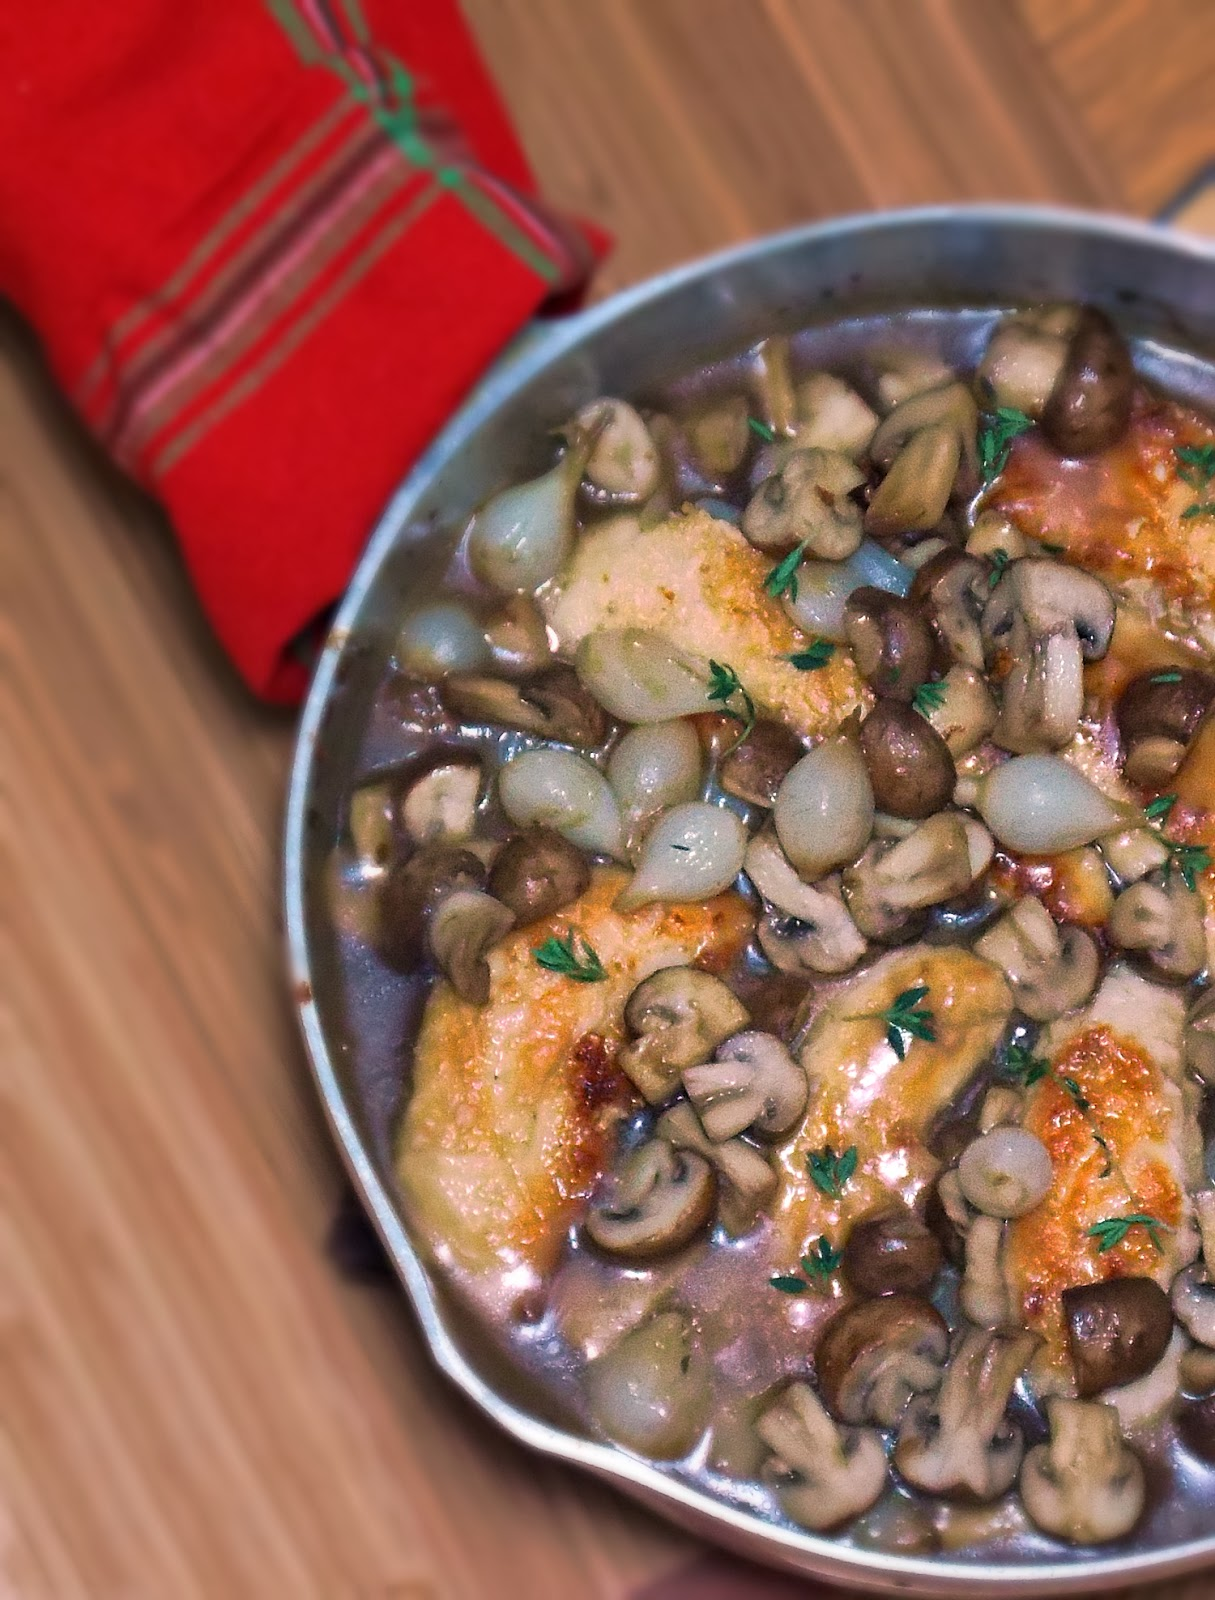 Recipes With Chicken Tenderloins And Mushrooms